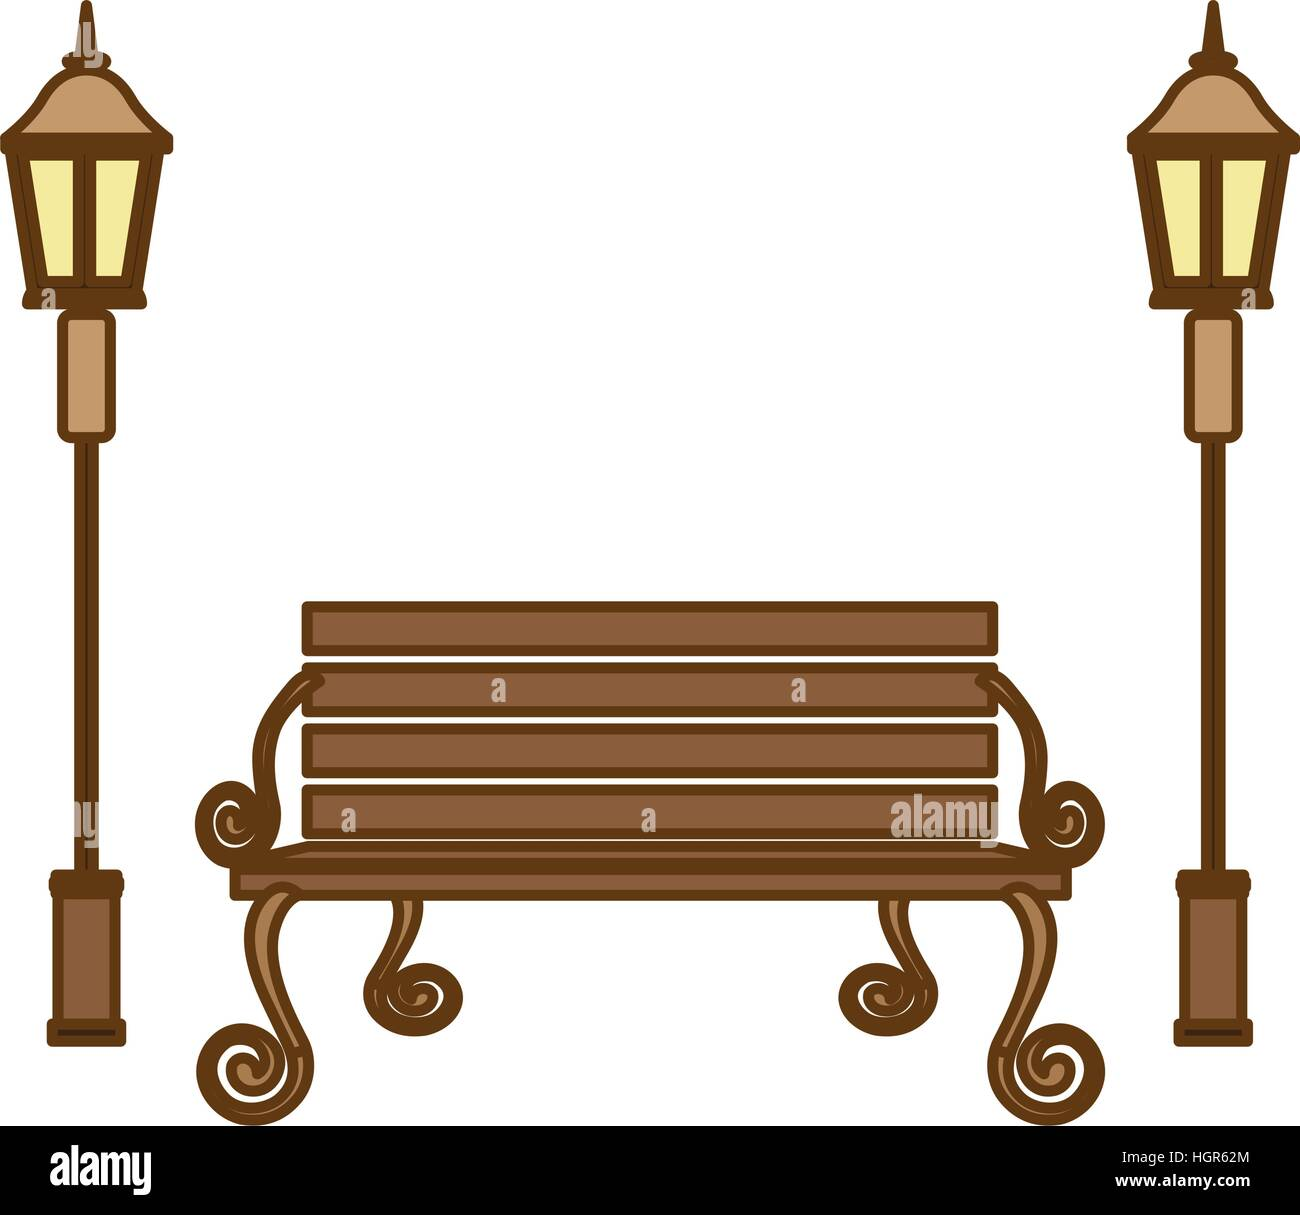 Park Bench And Vintage Street Lamps Icon Over White